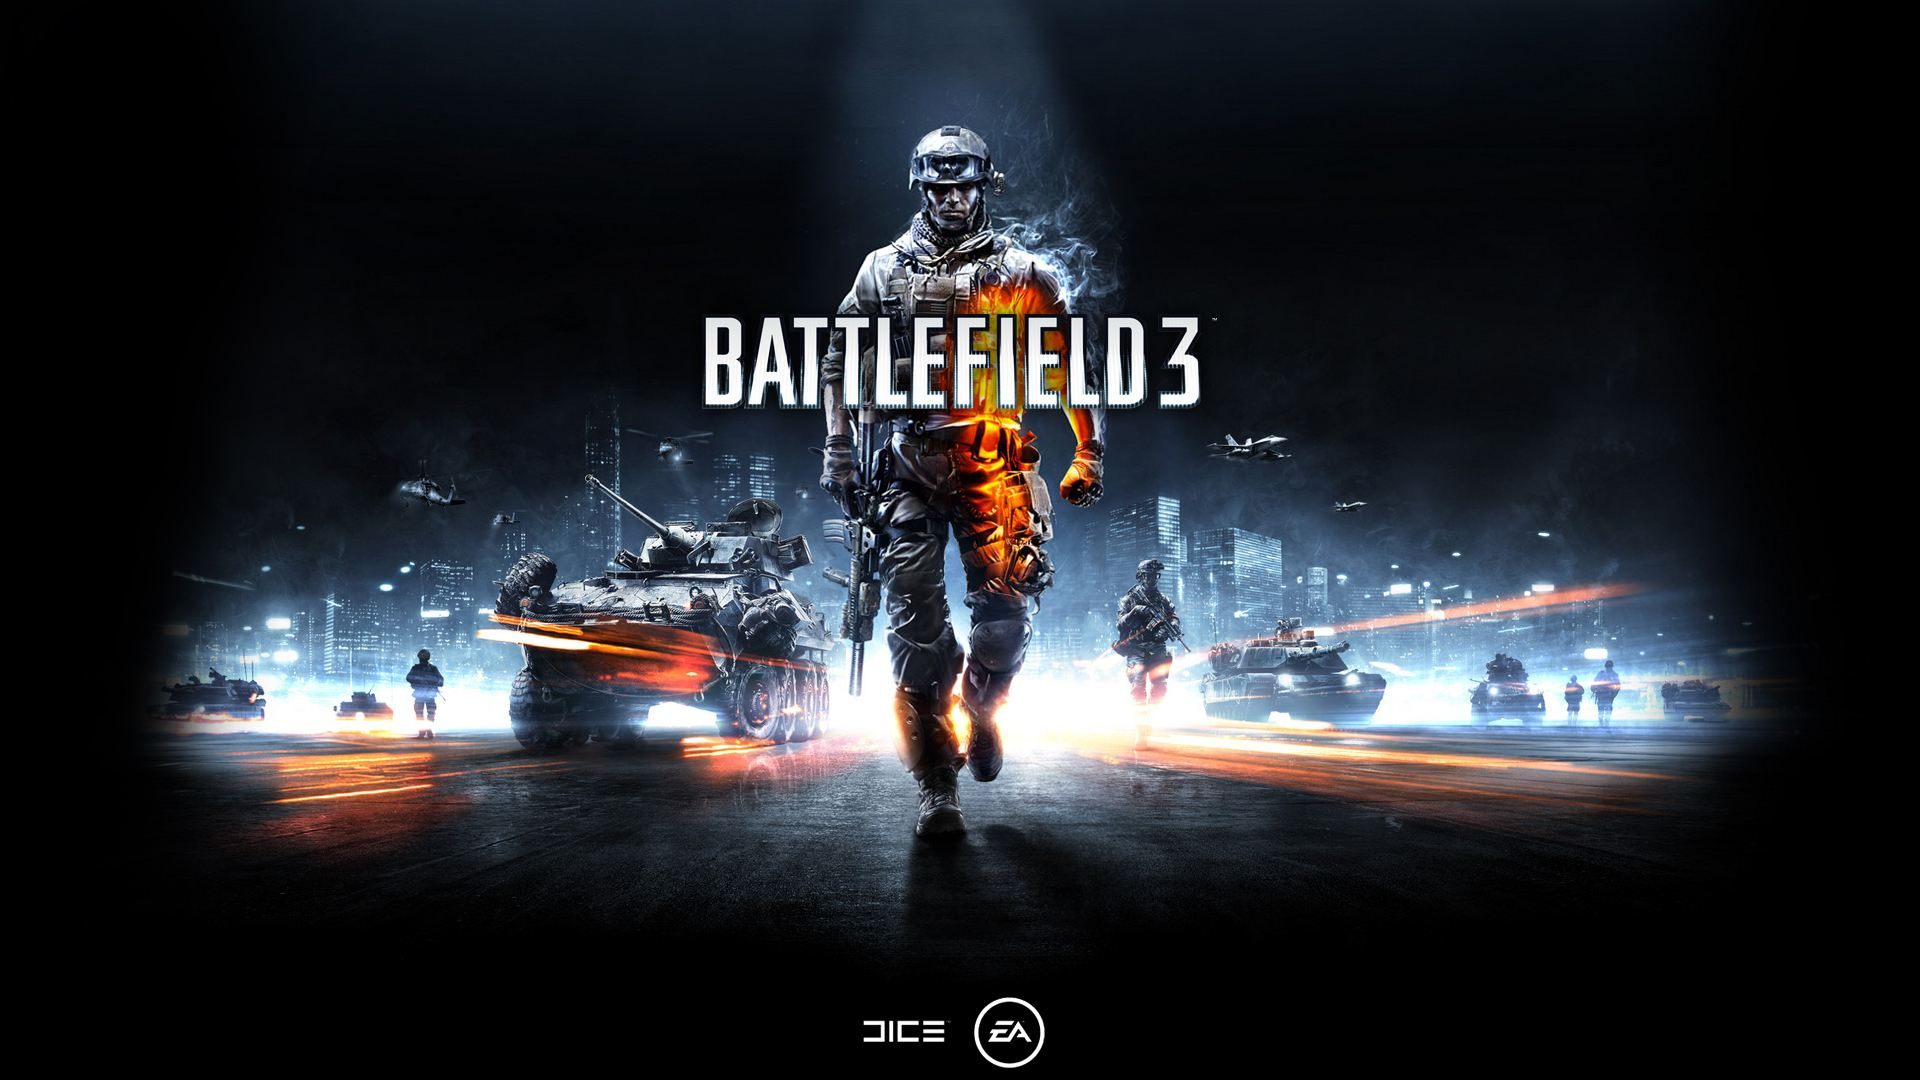 Battlefield 3 Free All This Week On PlayStation Plus